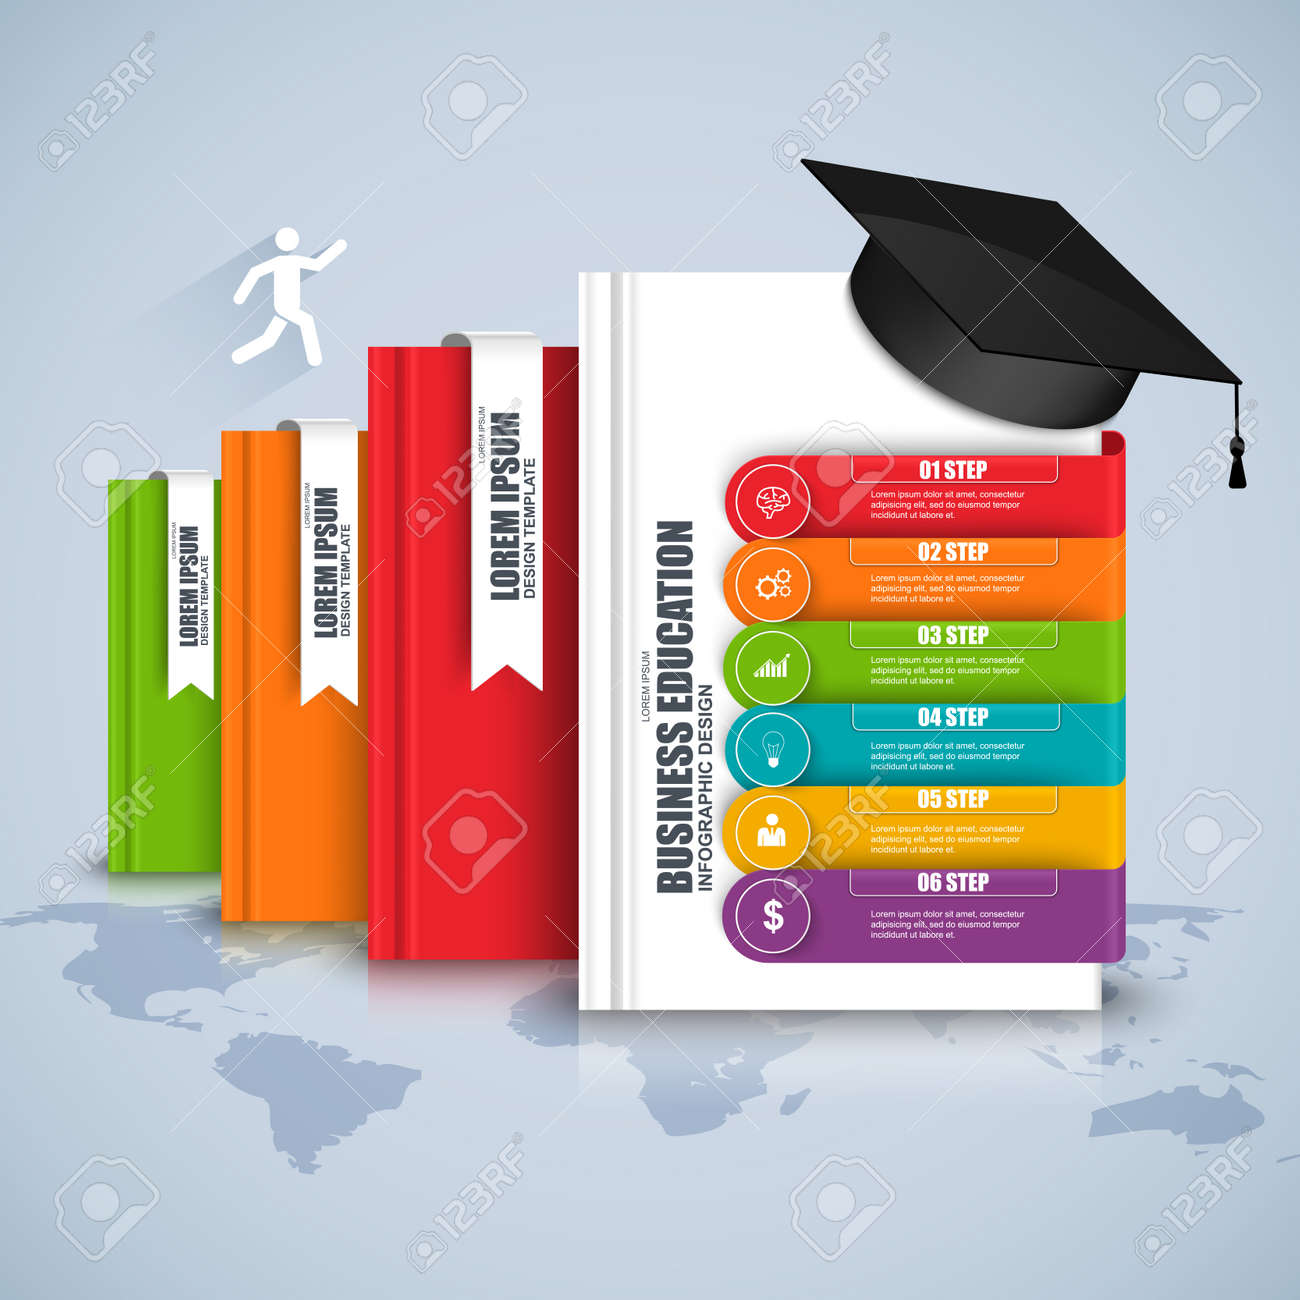 Books step business education infographic can be used for workflow books step business education infographic can be used for workflow processes banner diagram ccuart Image collections